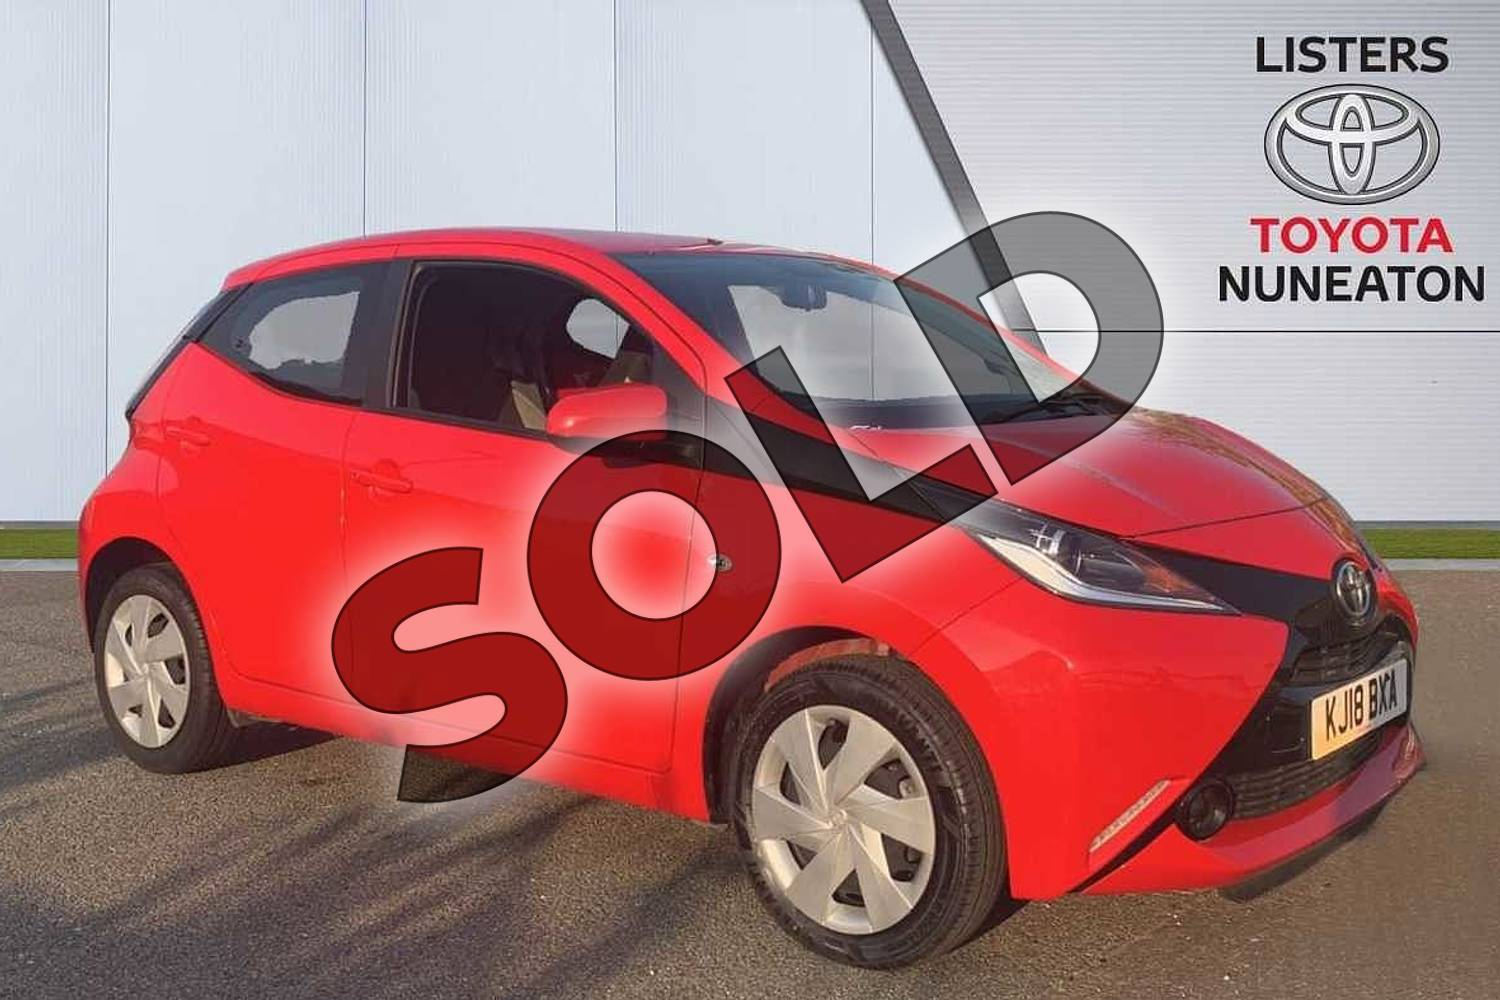 2018 Toyota AYGO Hatchback 1.0 VVT-i X-Play 5dr in Red at Listers Toyota Nuneaton